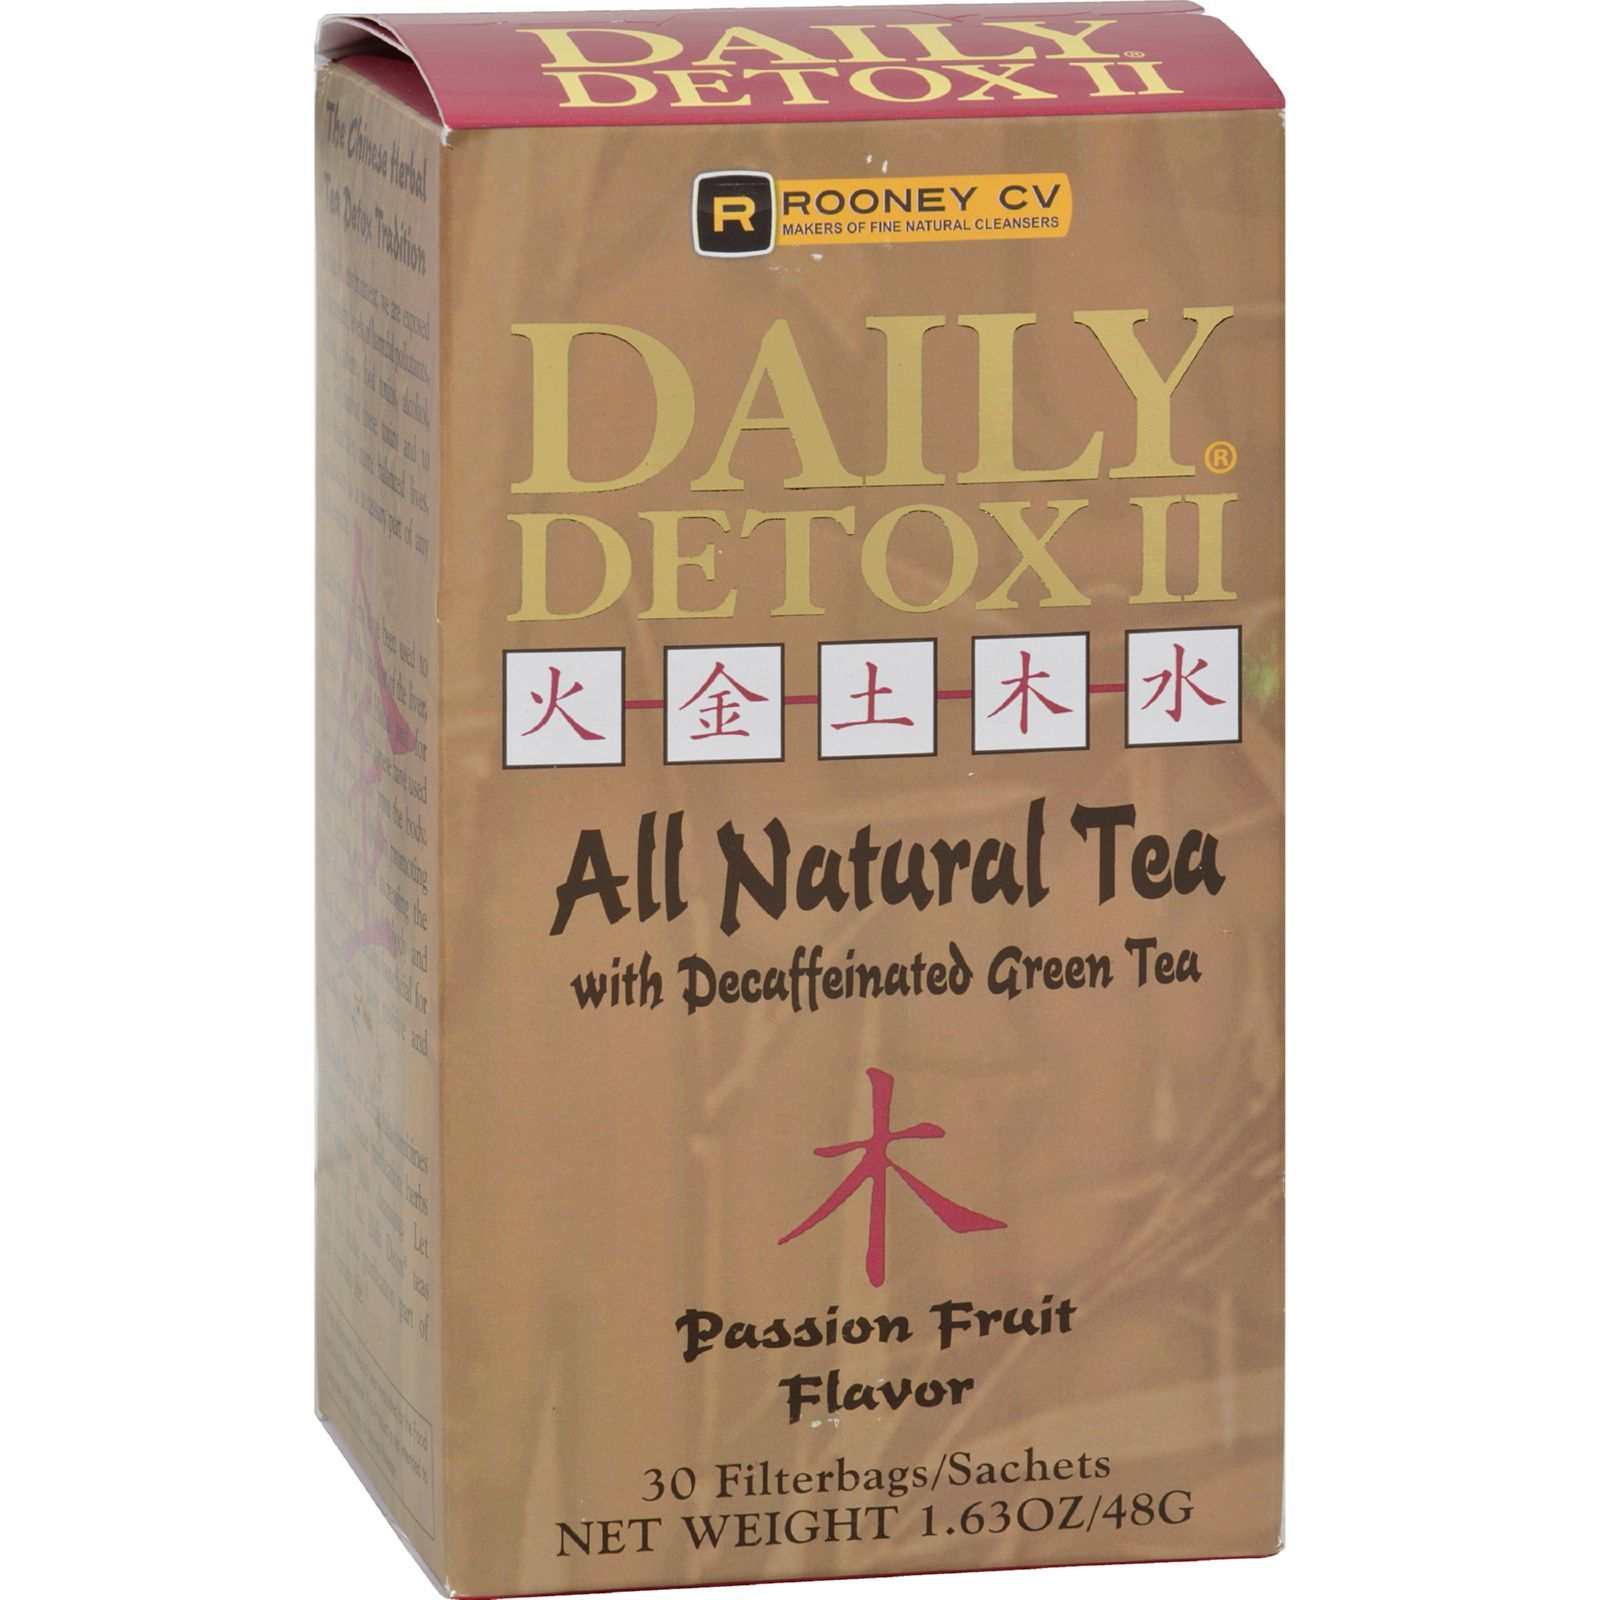 Wellements Rooney CV Daily Detox II All Natural Decaffeinated Tea Passion Fruit - 30 Sachet